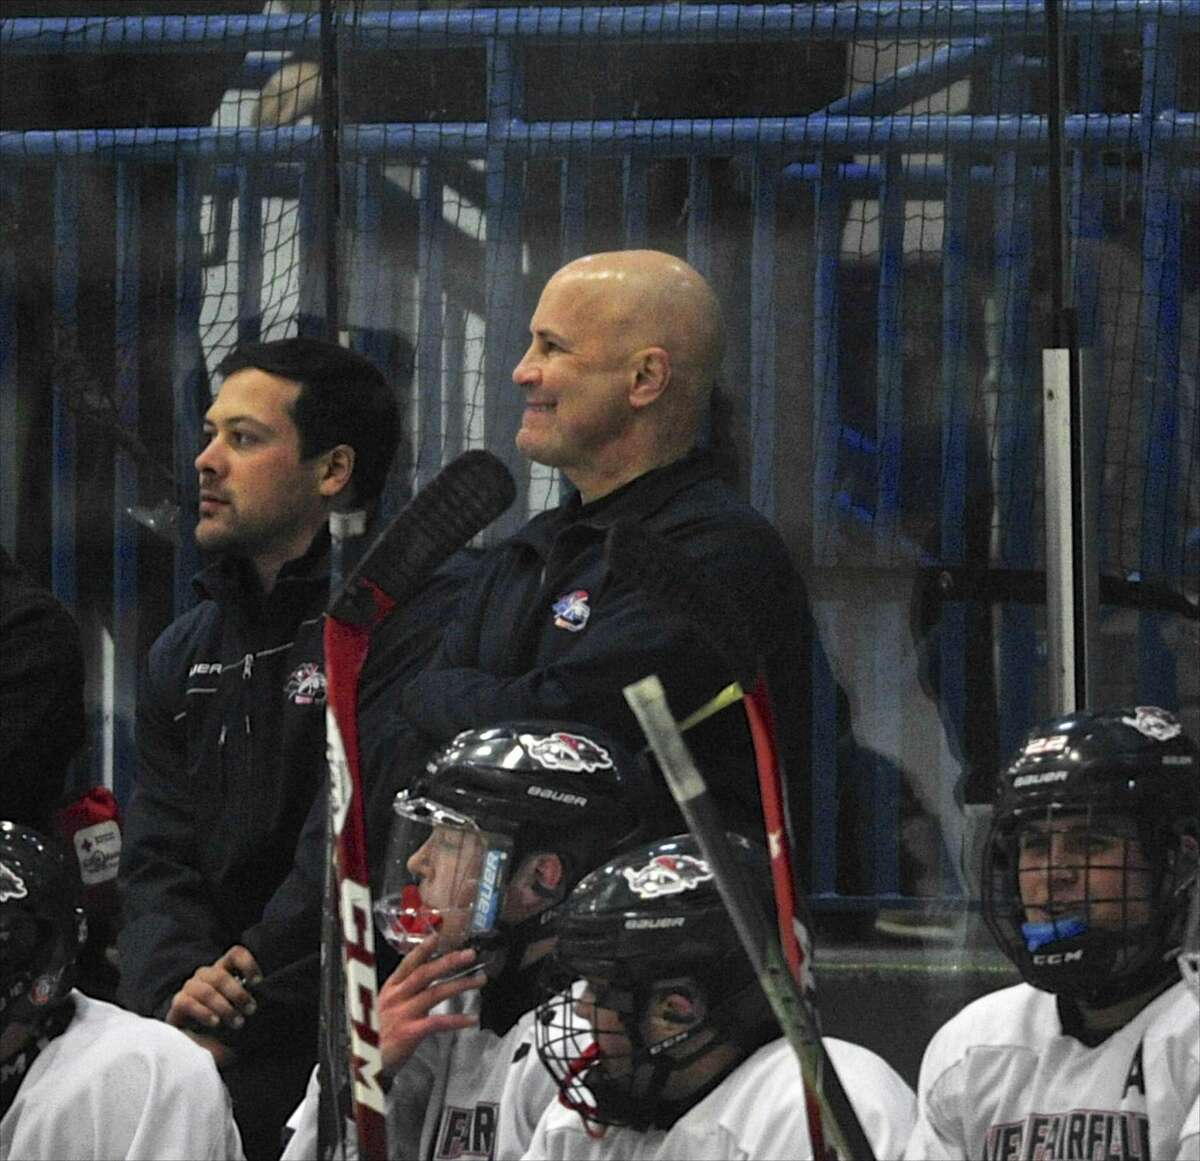 Larry Vieira, seen here coaching New Fairfield/Immaculate in 2015, was named the new Notre Dame-West Haven boys hockey coach on Monday.